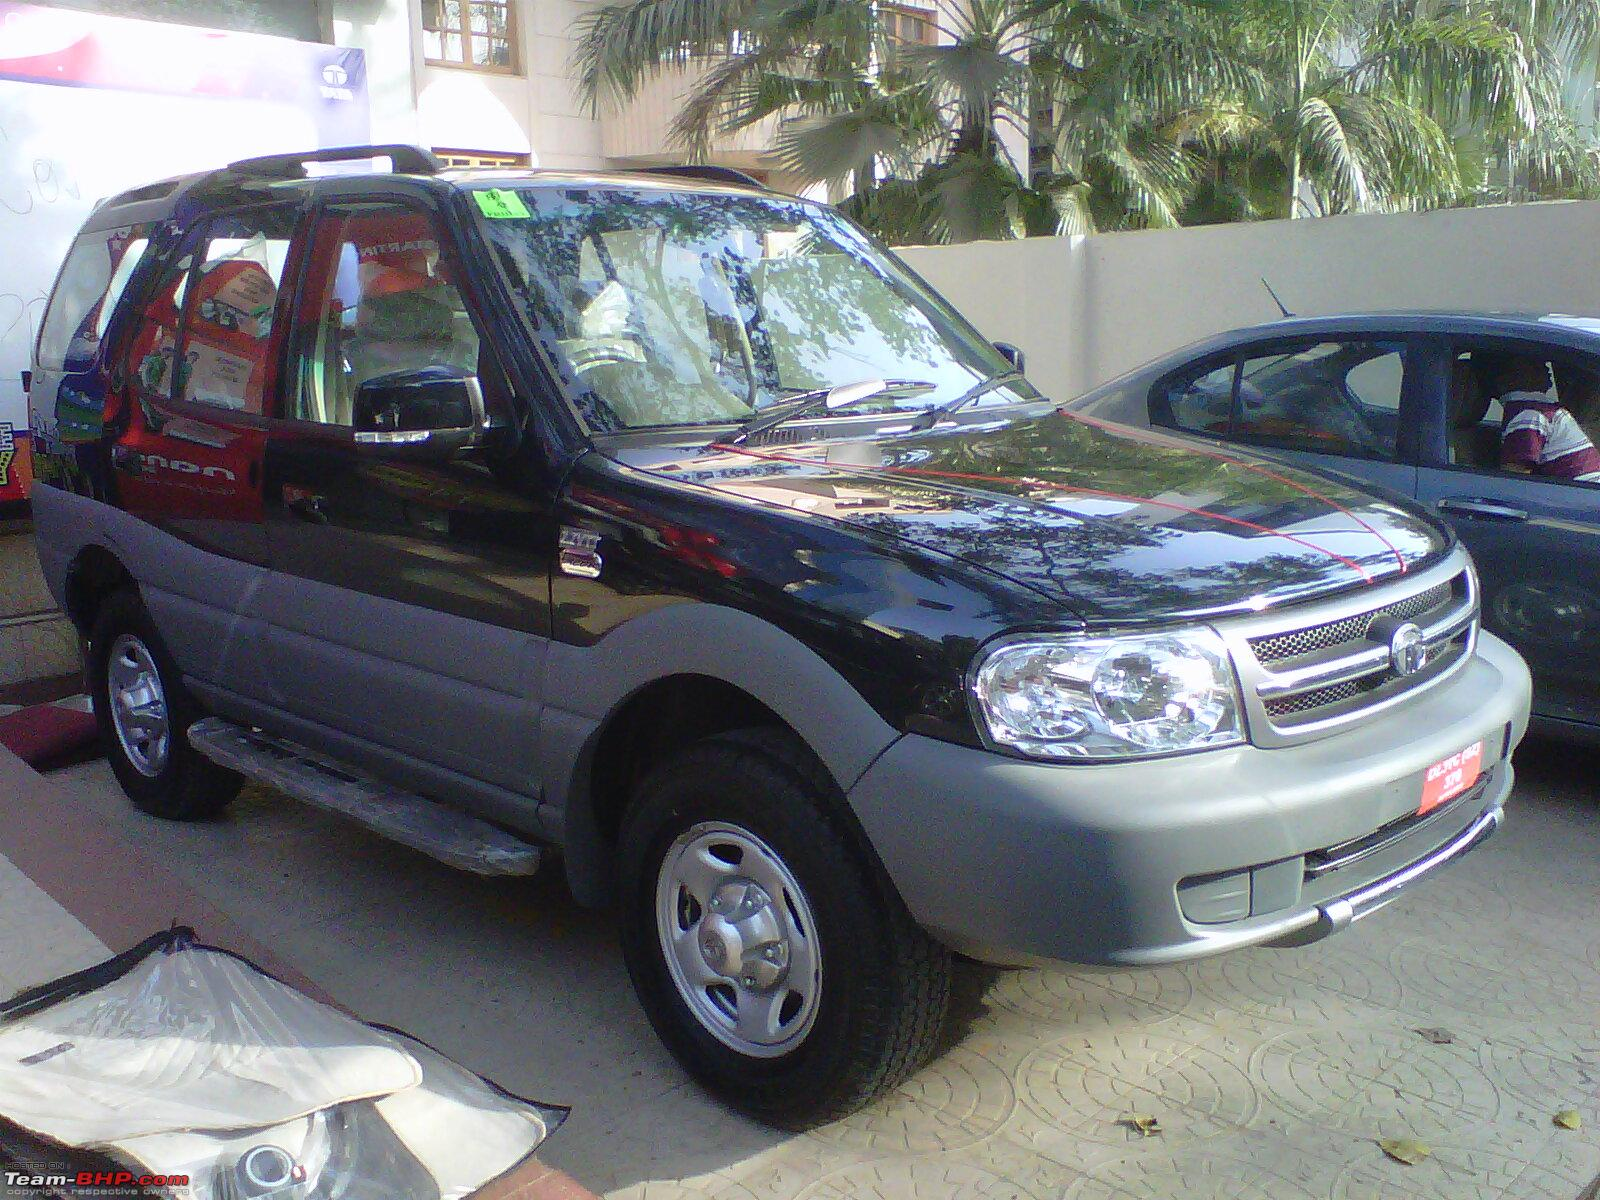 Time to reclaim my life 2012 tata safari dicor aka beast img2012030900625